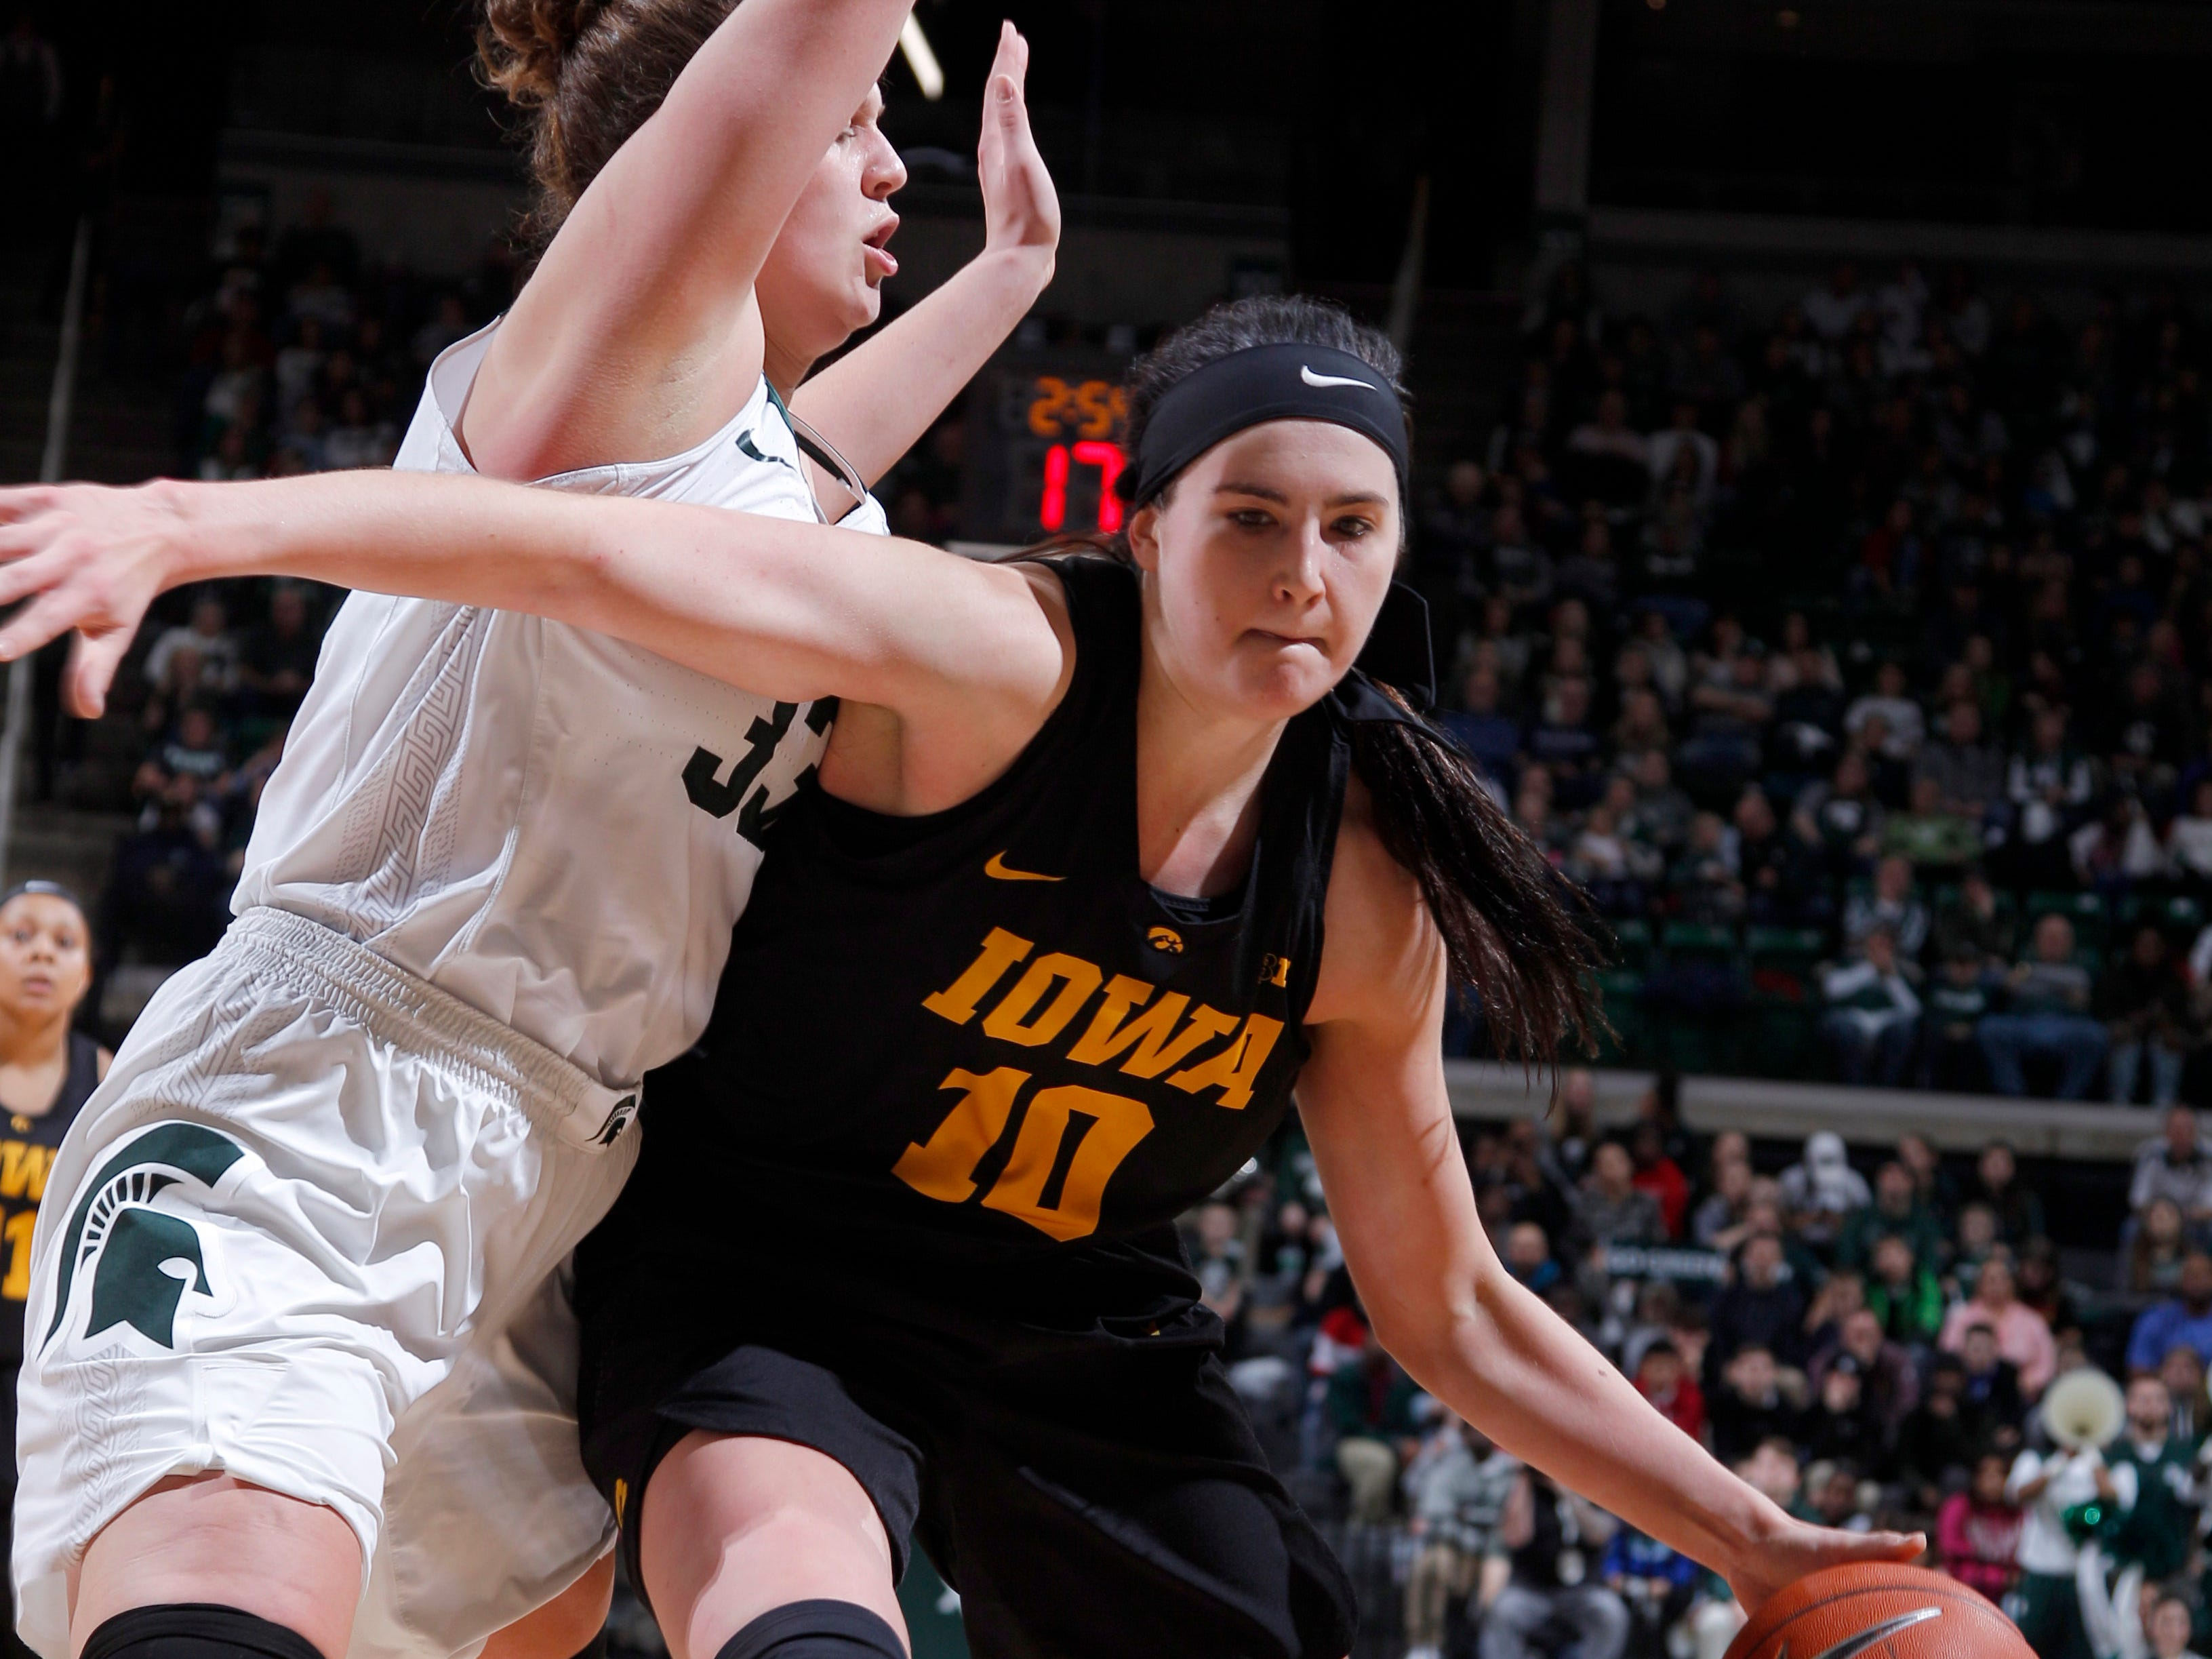 Iowa's Megan Gustafson, right, drives against Michigan State's Jenna Allen during an NCAA college basketball game, Sunday, Dec. 30, 2018, in East Lansing, Mich. Michigan State won 84-70. (AP Photo/Al Goldis)